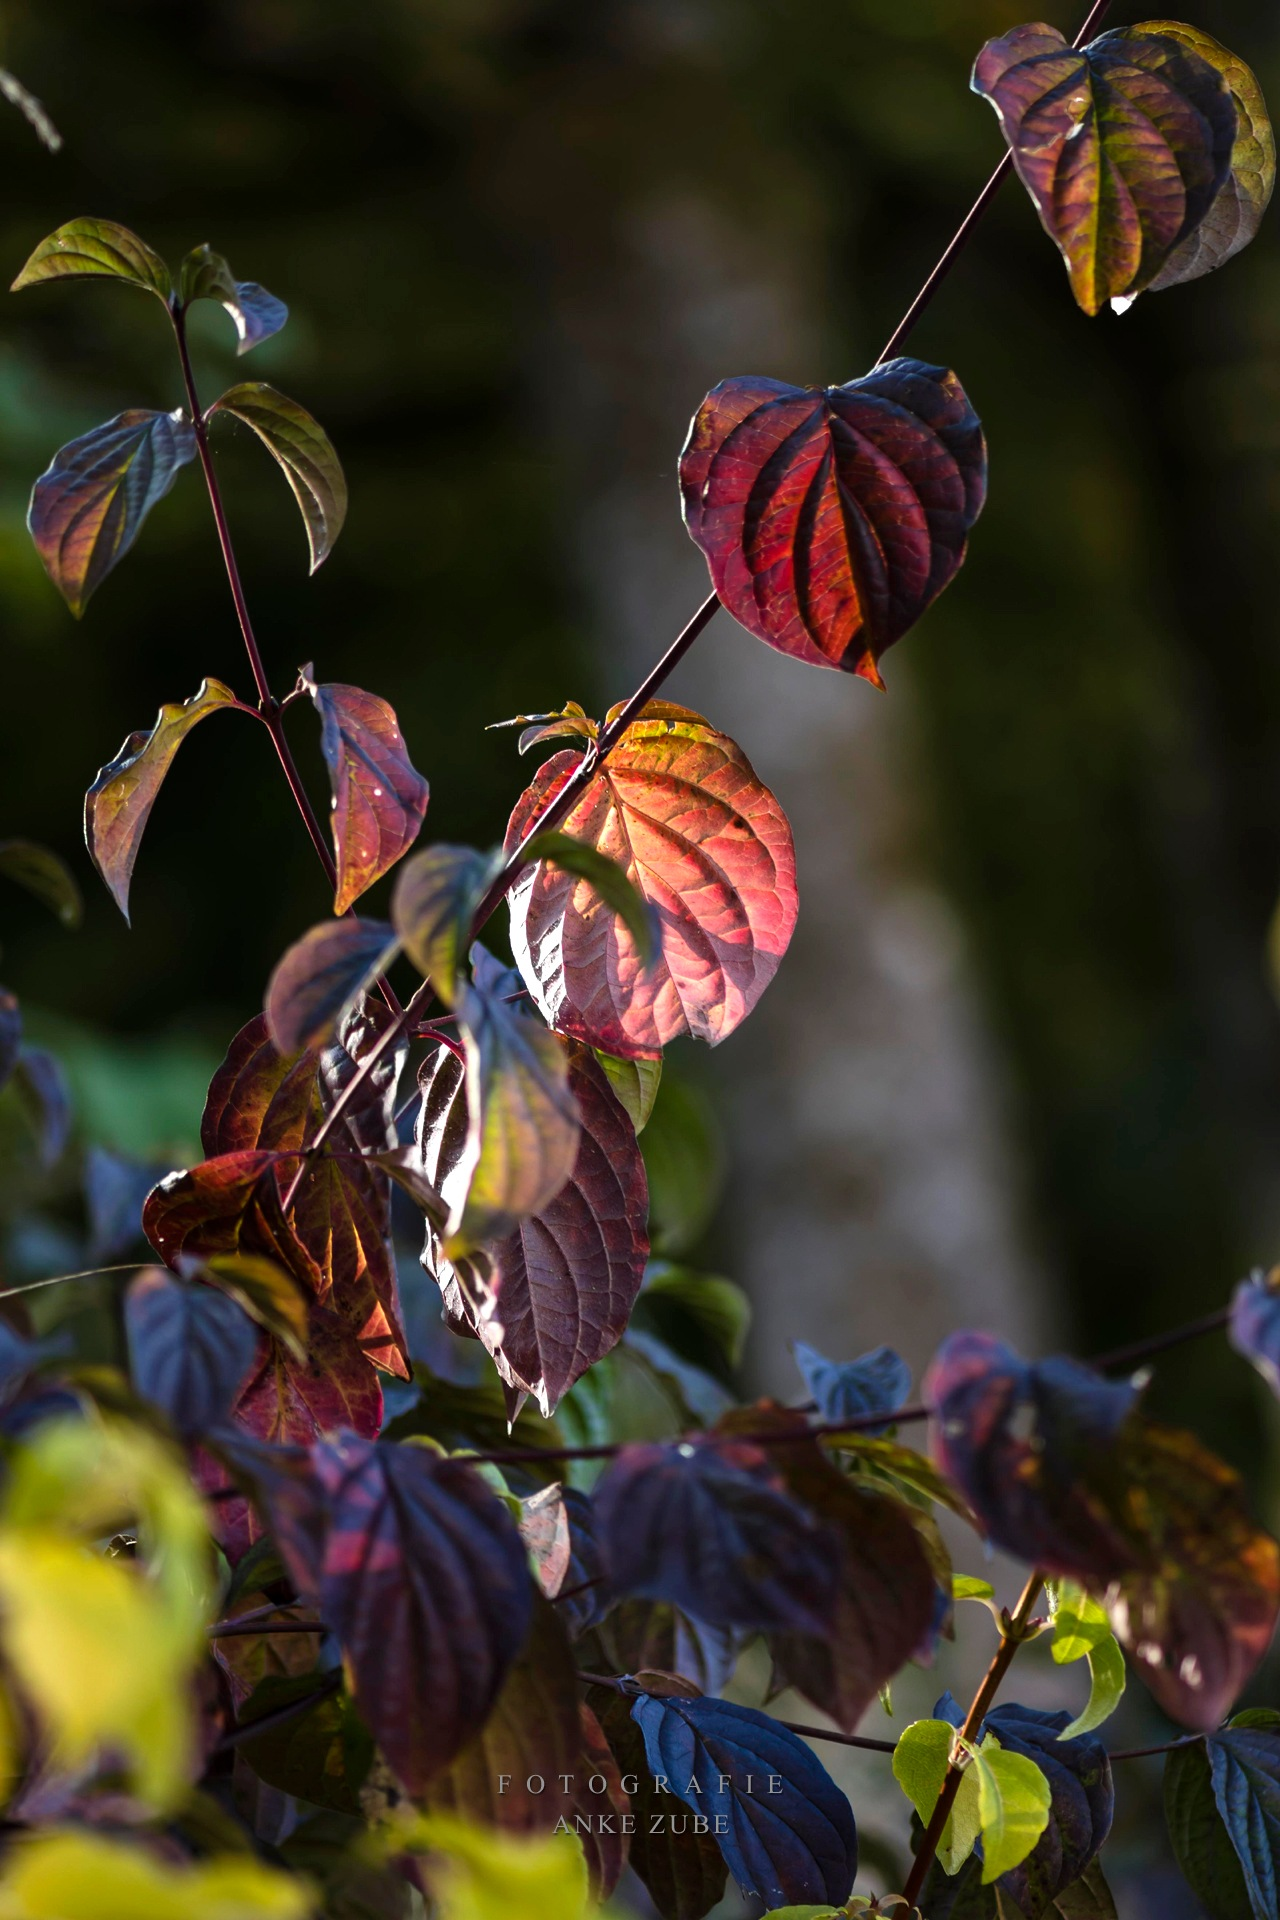 Autumn leaves in the sunlight by Anke Zube